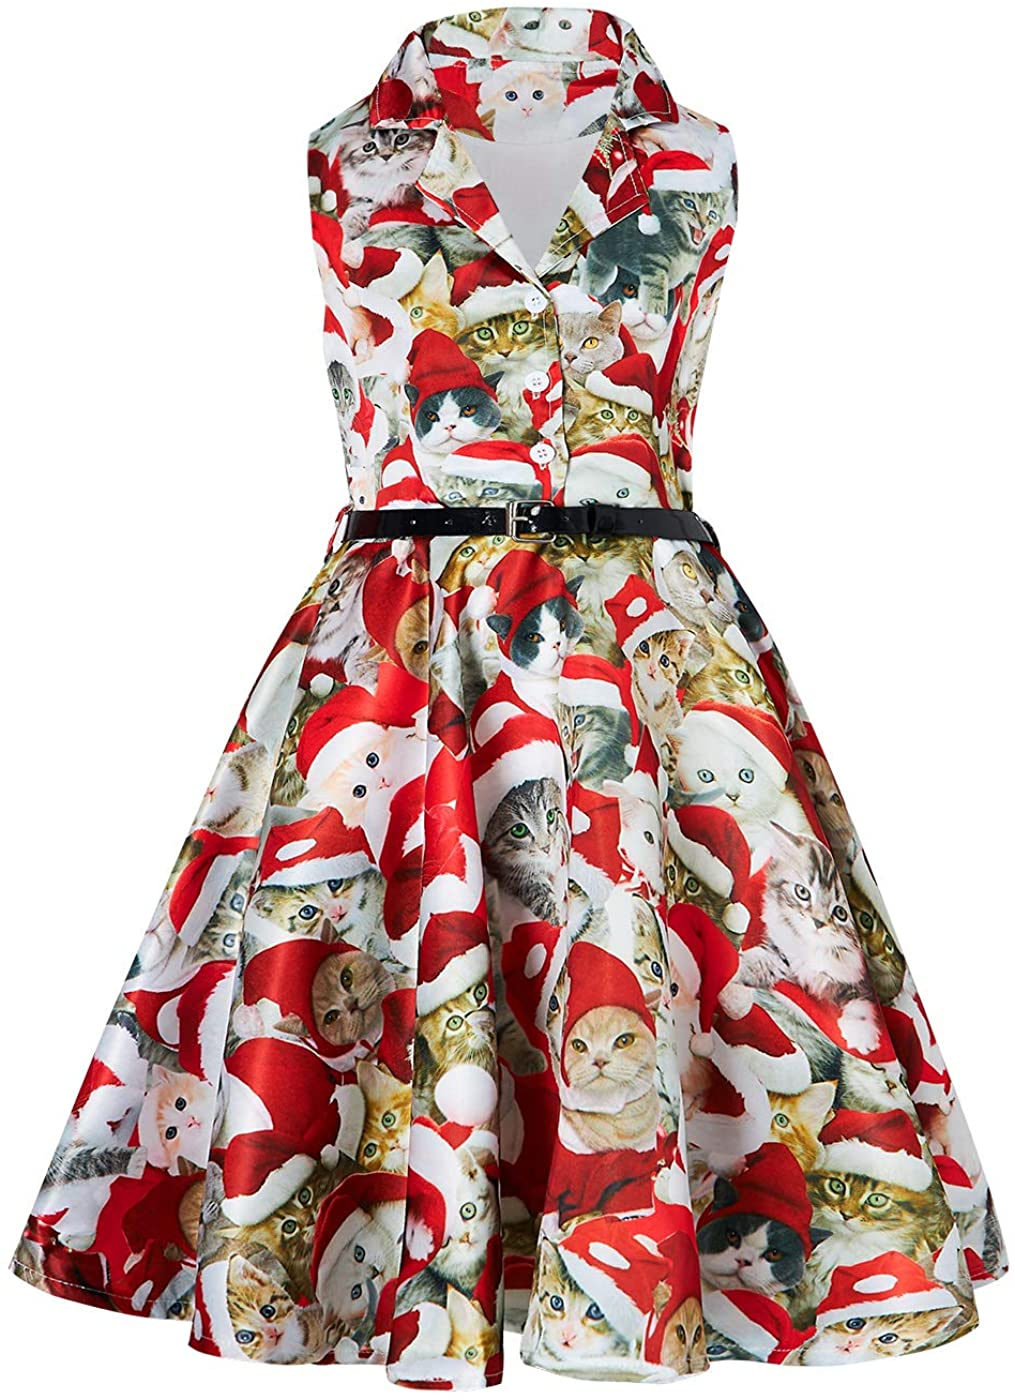 RAISEVERN Girls Vintage Dress Retro Print Sleeveless Swing Party Dresses with Belt 6-13 Years